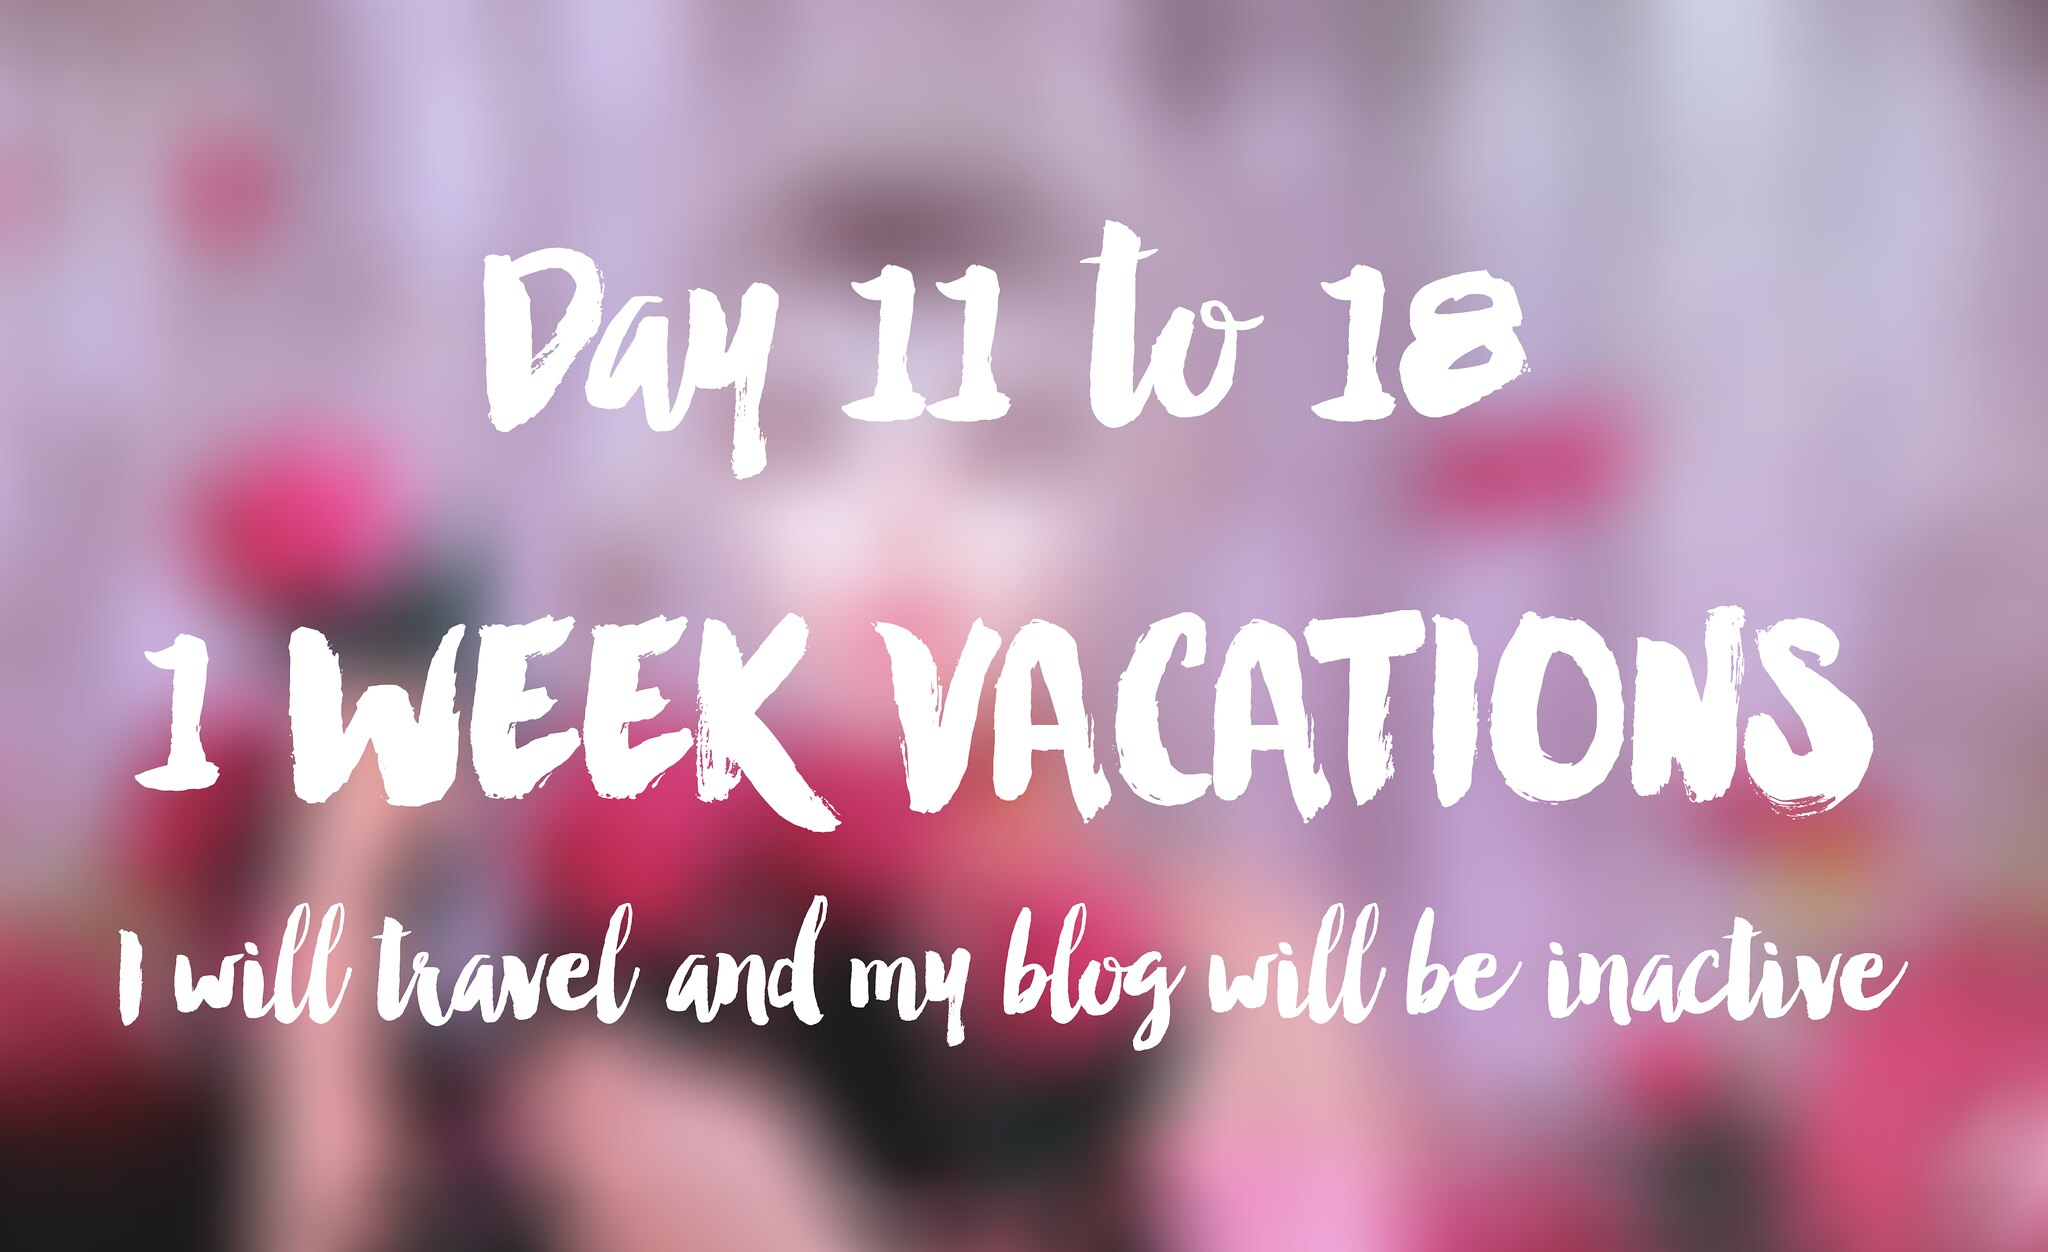 VACATIONS 11-03-18 to 18-03-18